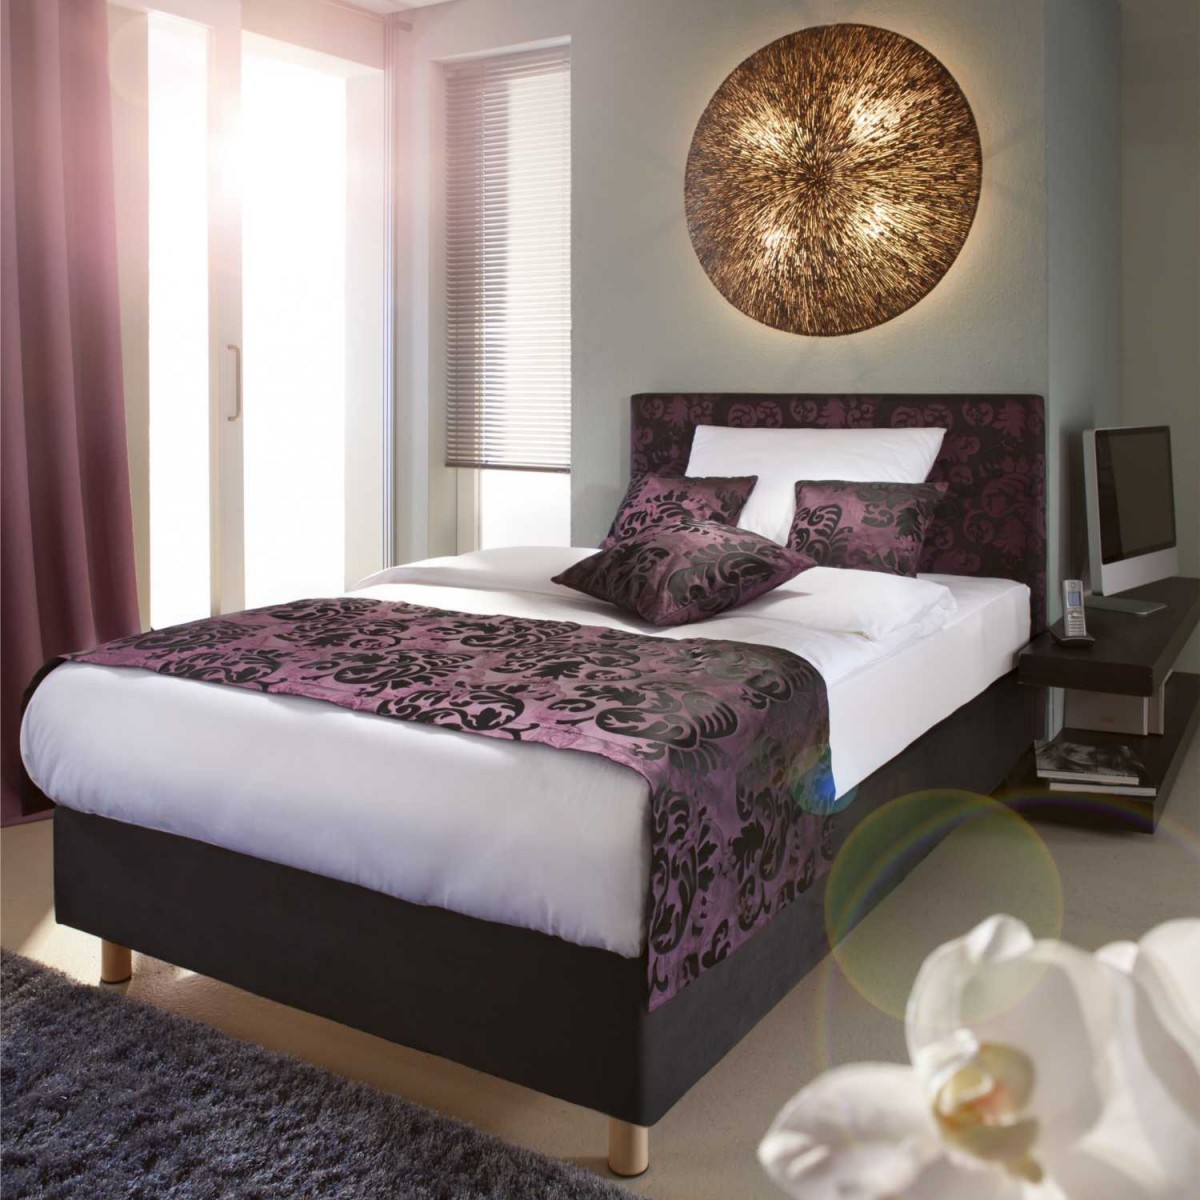 fbf savoy classic hotel boxspringbett l nge 200 cm hotel4home. Black Bedroom Furniture Sets. Home Design Ideas